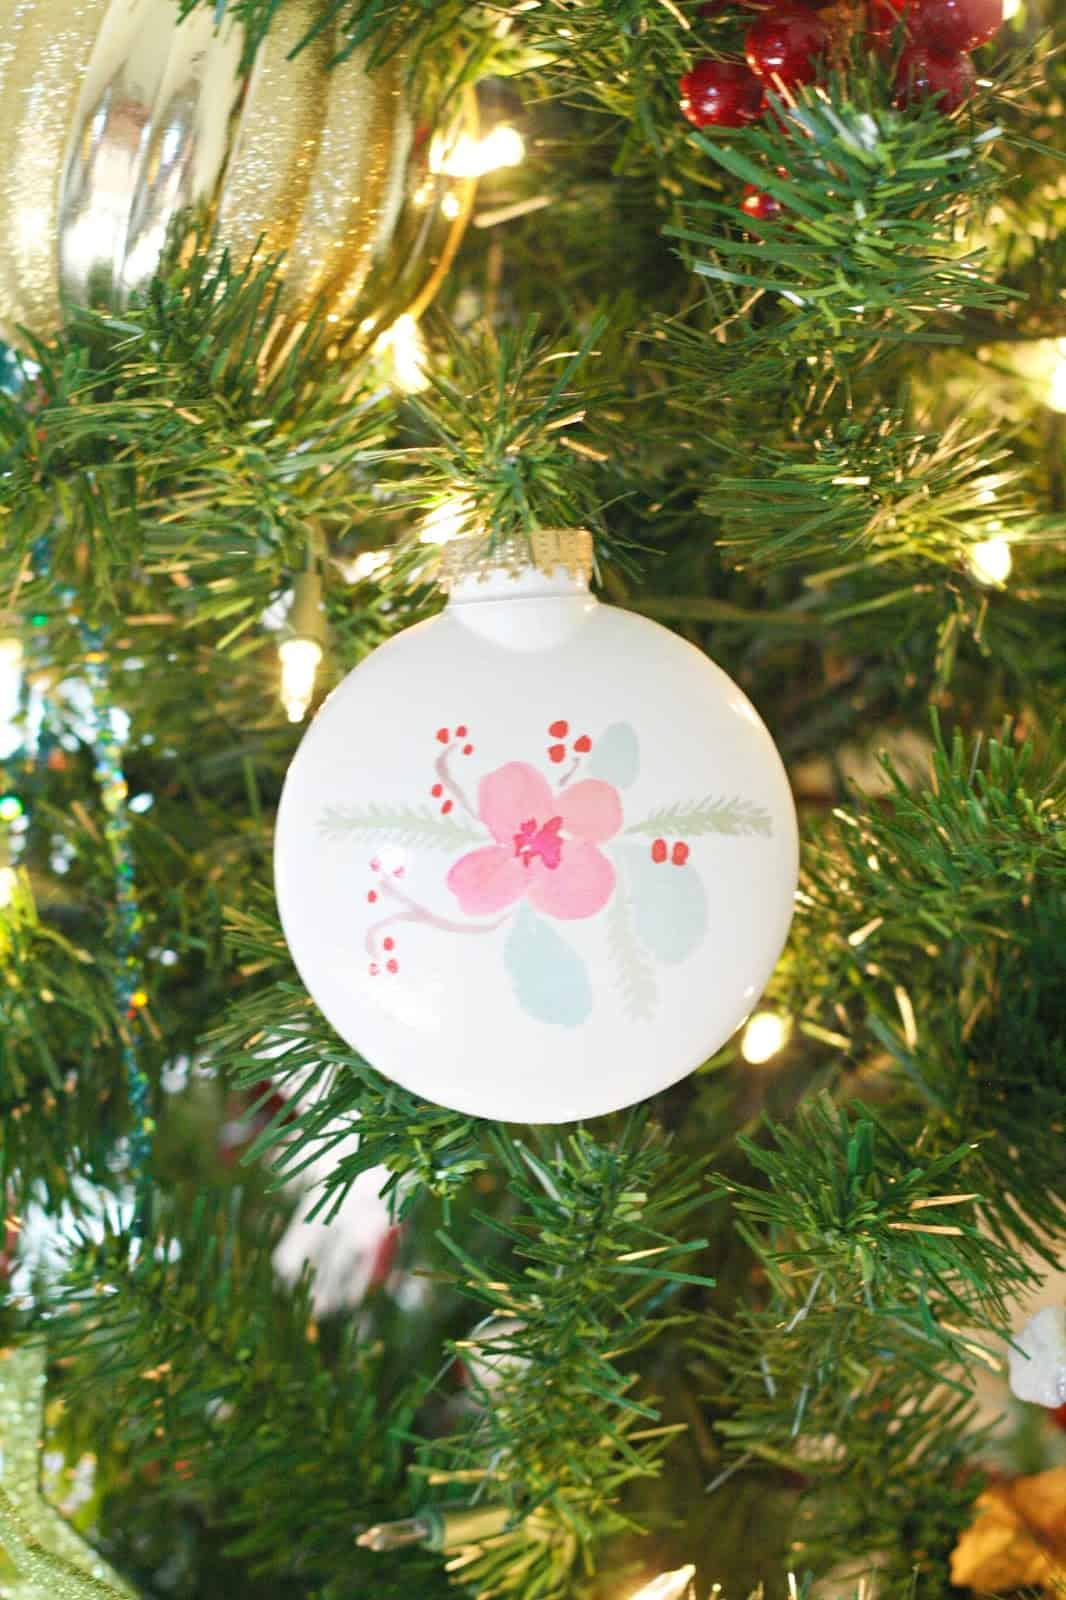 Temporary Tattoo Diy Christmas Ornaments Diycandy Com